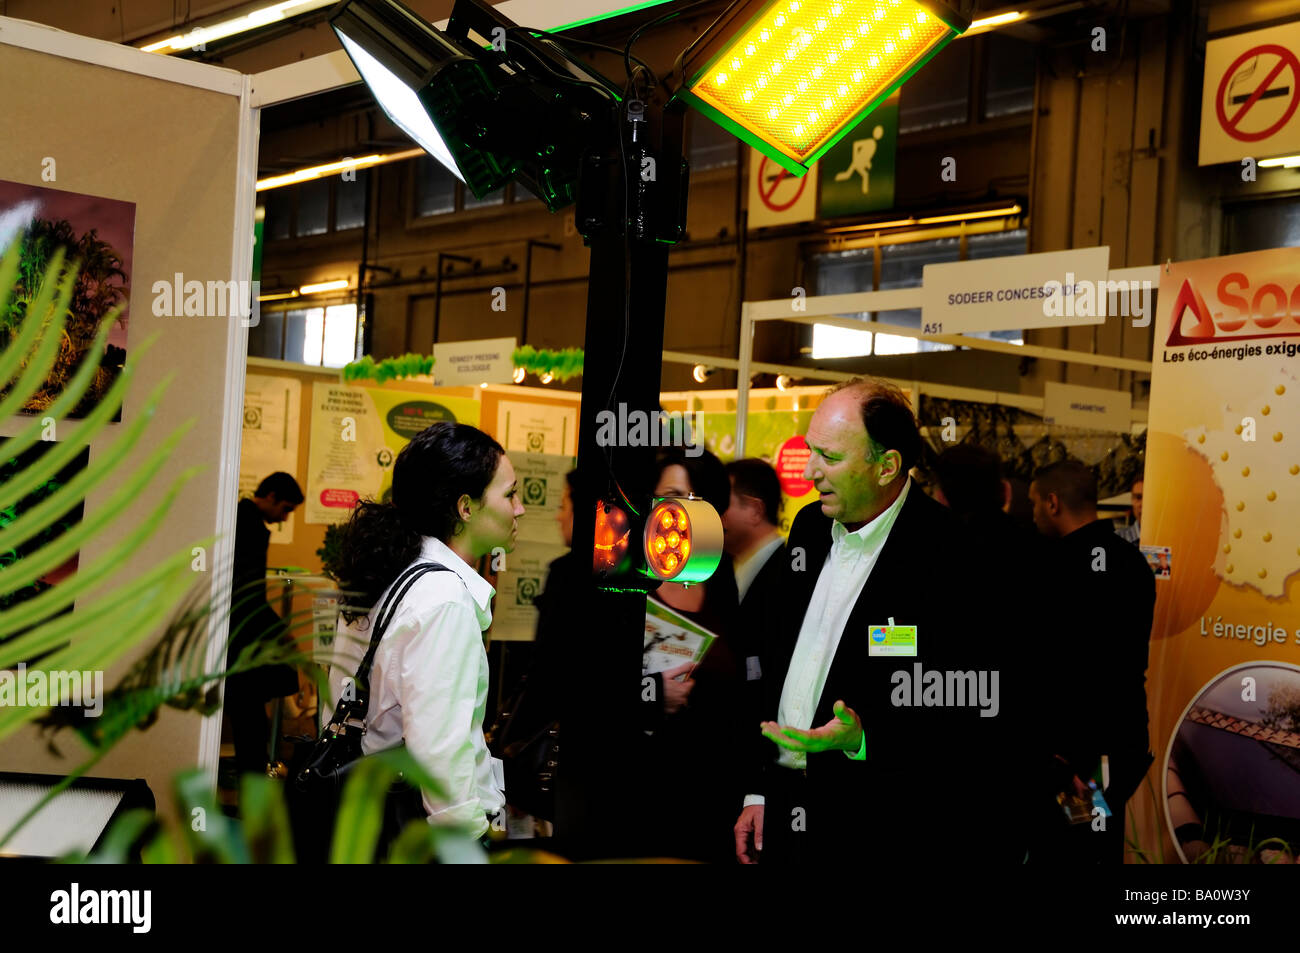 PARIS, FRANCE, Businessman Speaking  Sustainability Trade Show,  LED Lighting Exhibit 'Abyss Industry Co' - Stock Image